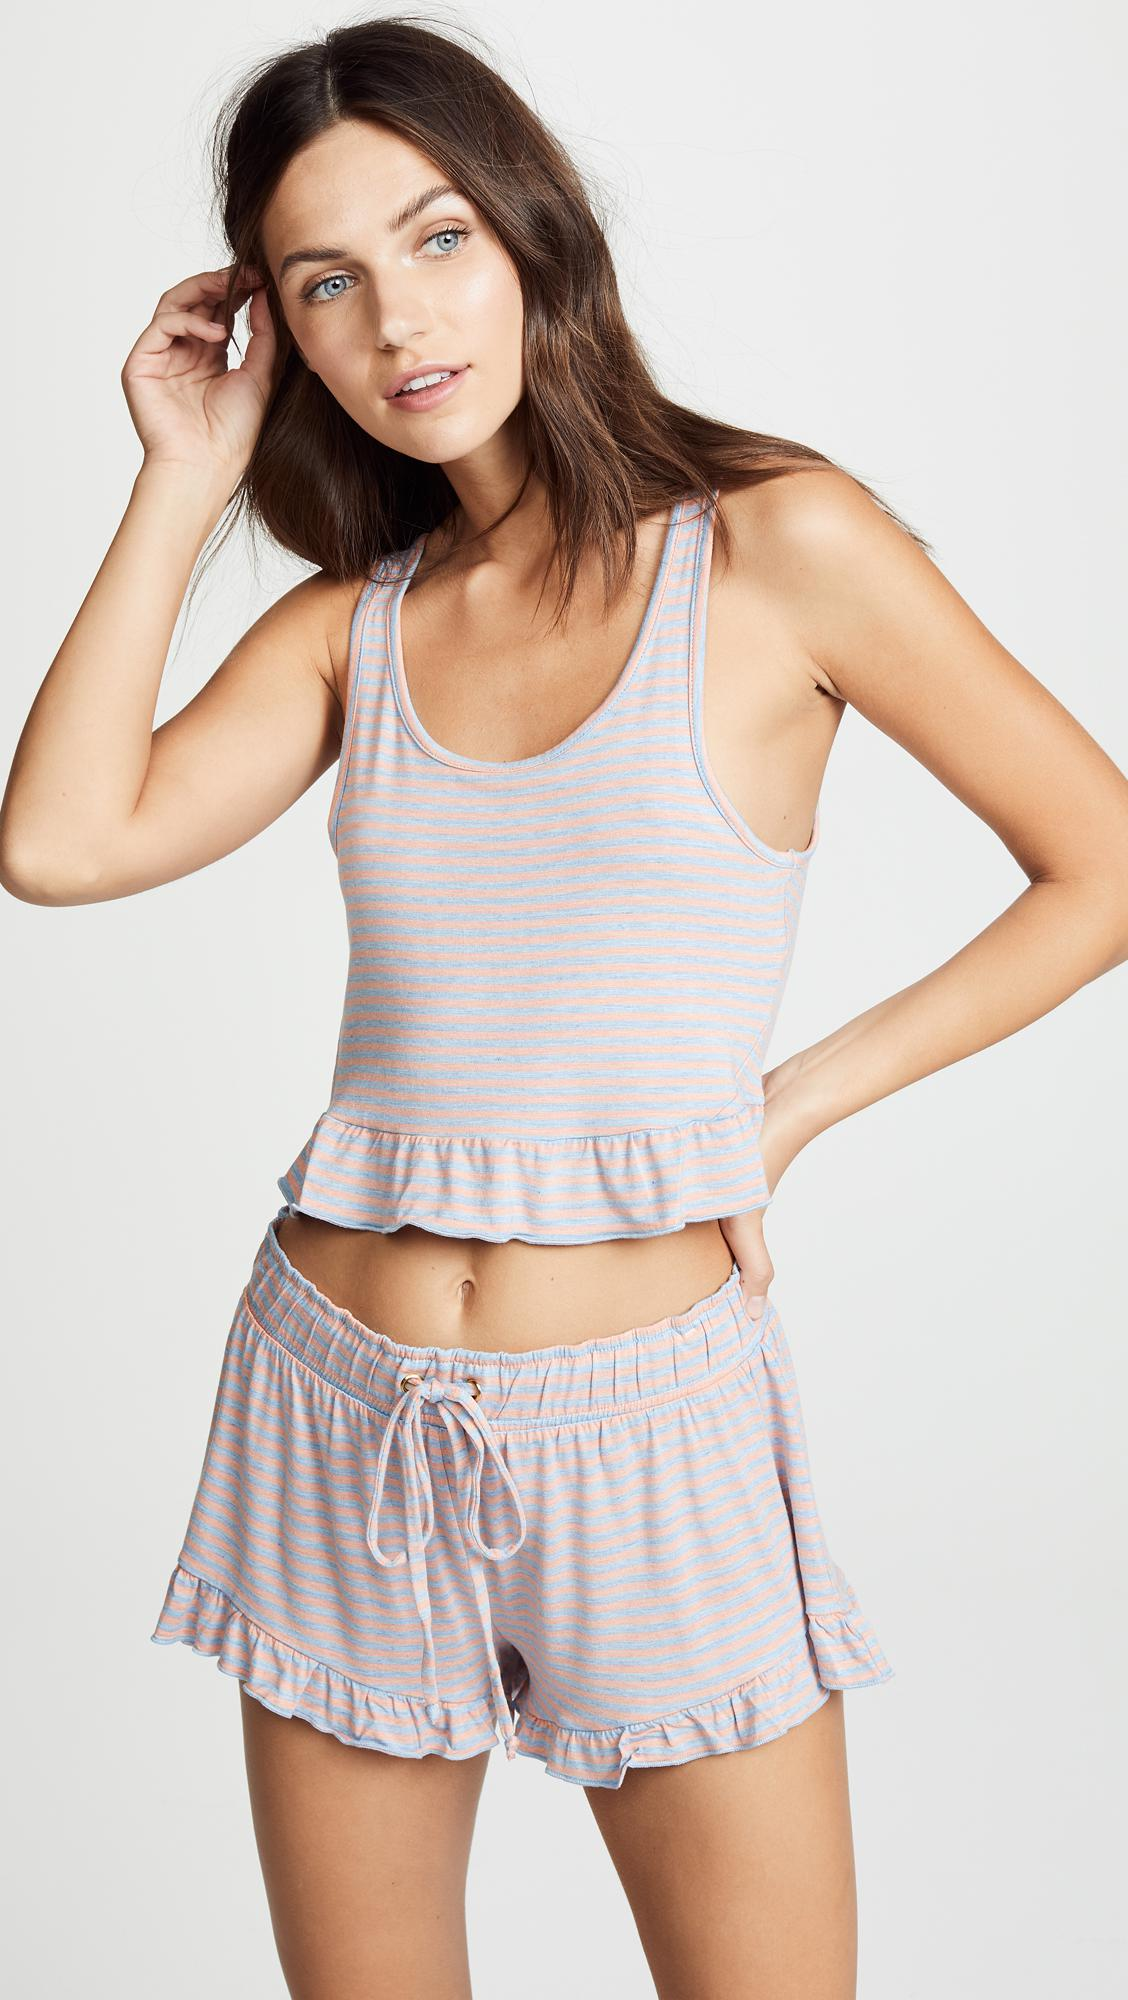 Honeydew Intimates Synthetic Catnap Lounge Crop Top - Lyst